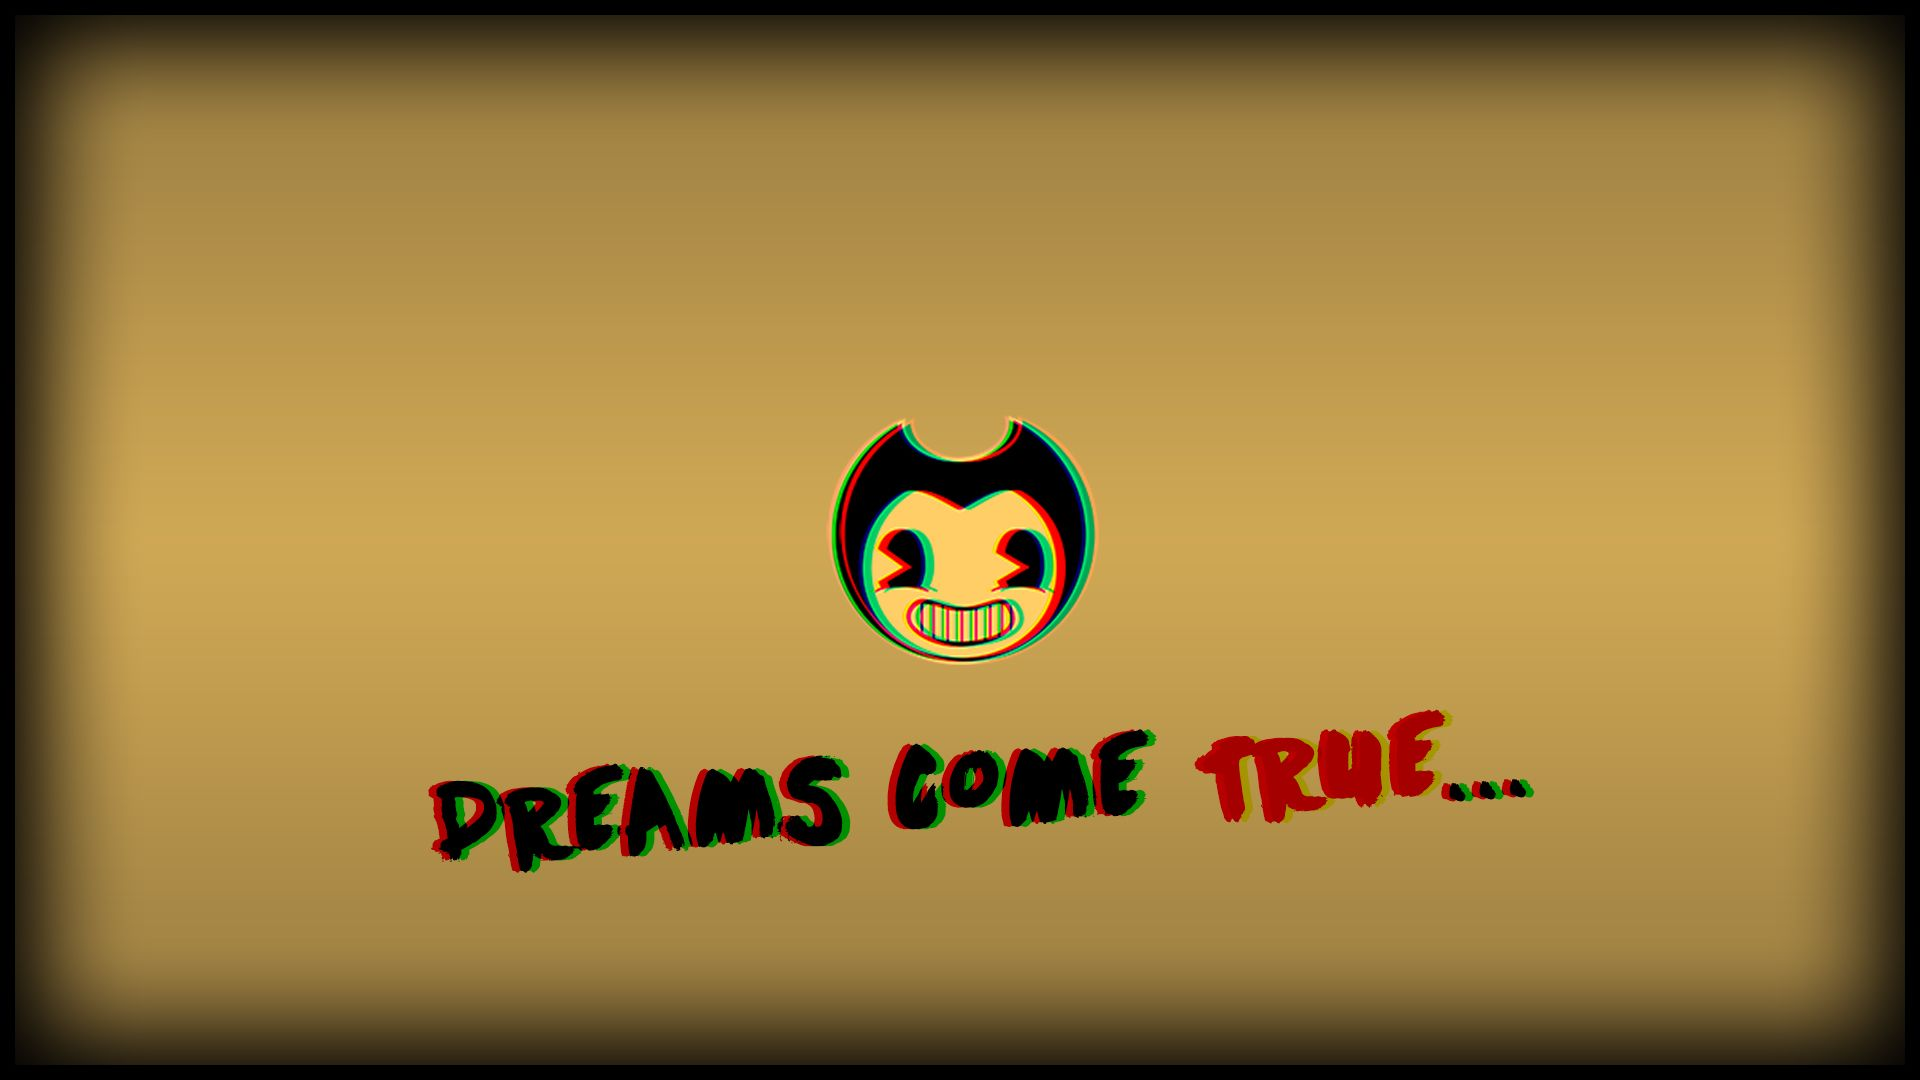 Free Download Bendy And The Ink Machine Batim Wallpaper Wallpapers